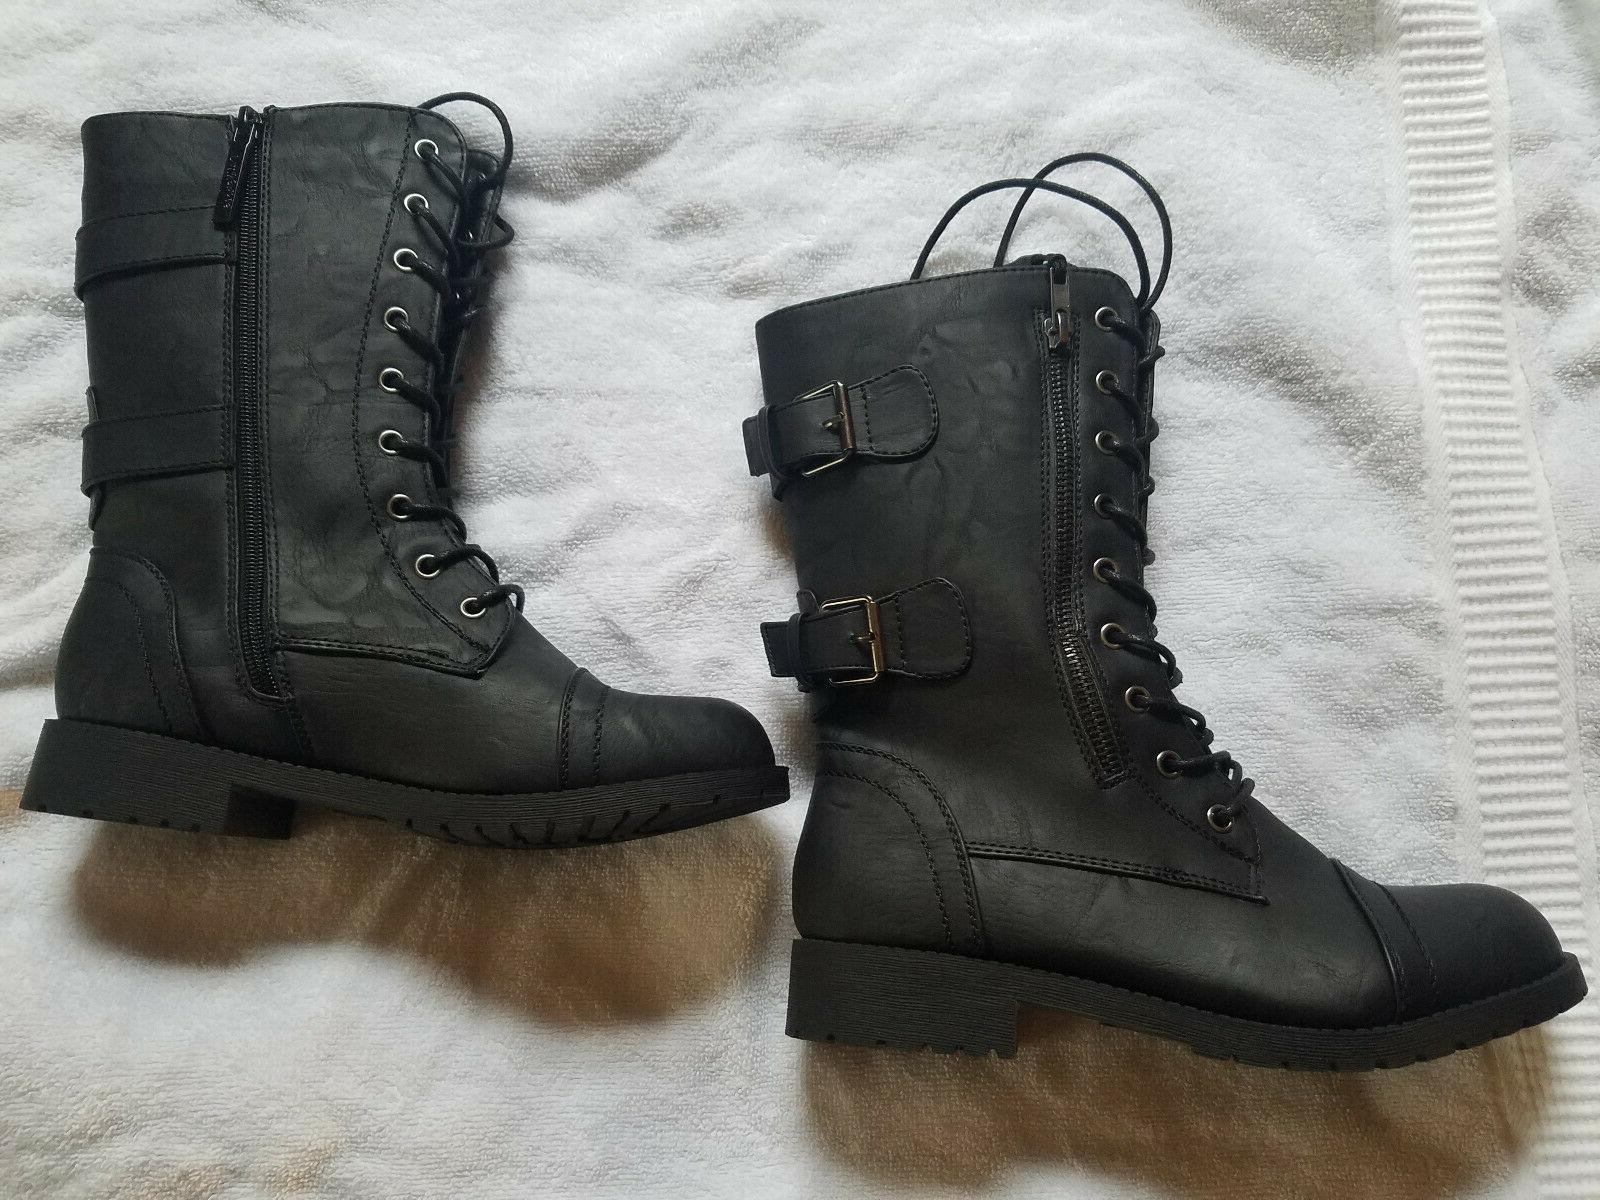 DailyShoes Ankle Bootie Military Combat Boots size 7.5